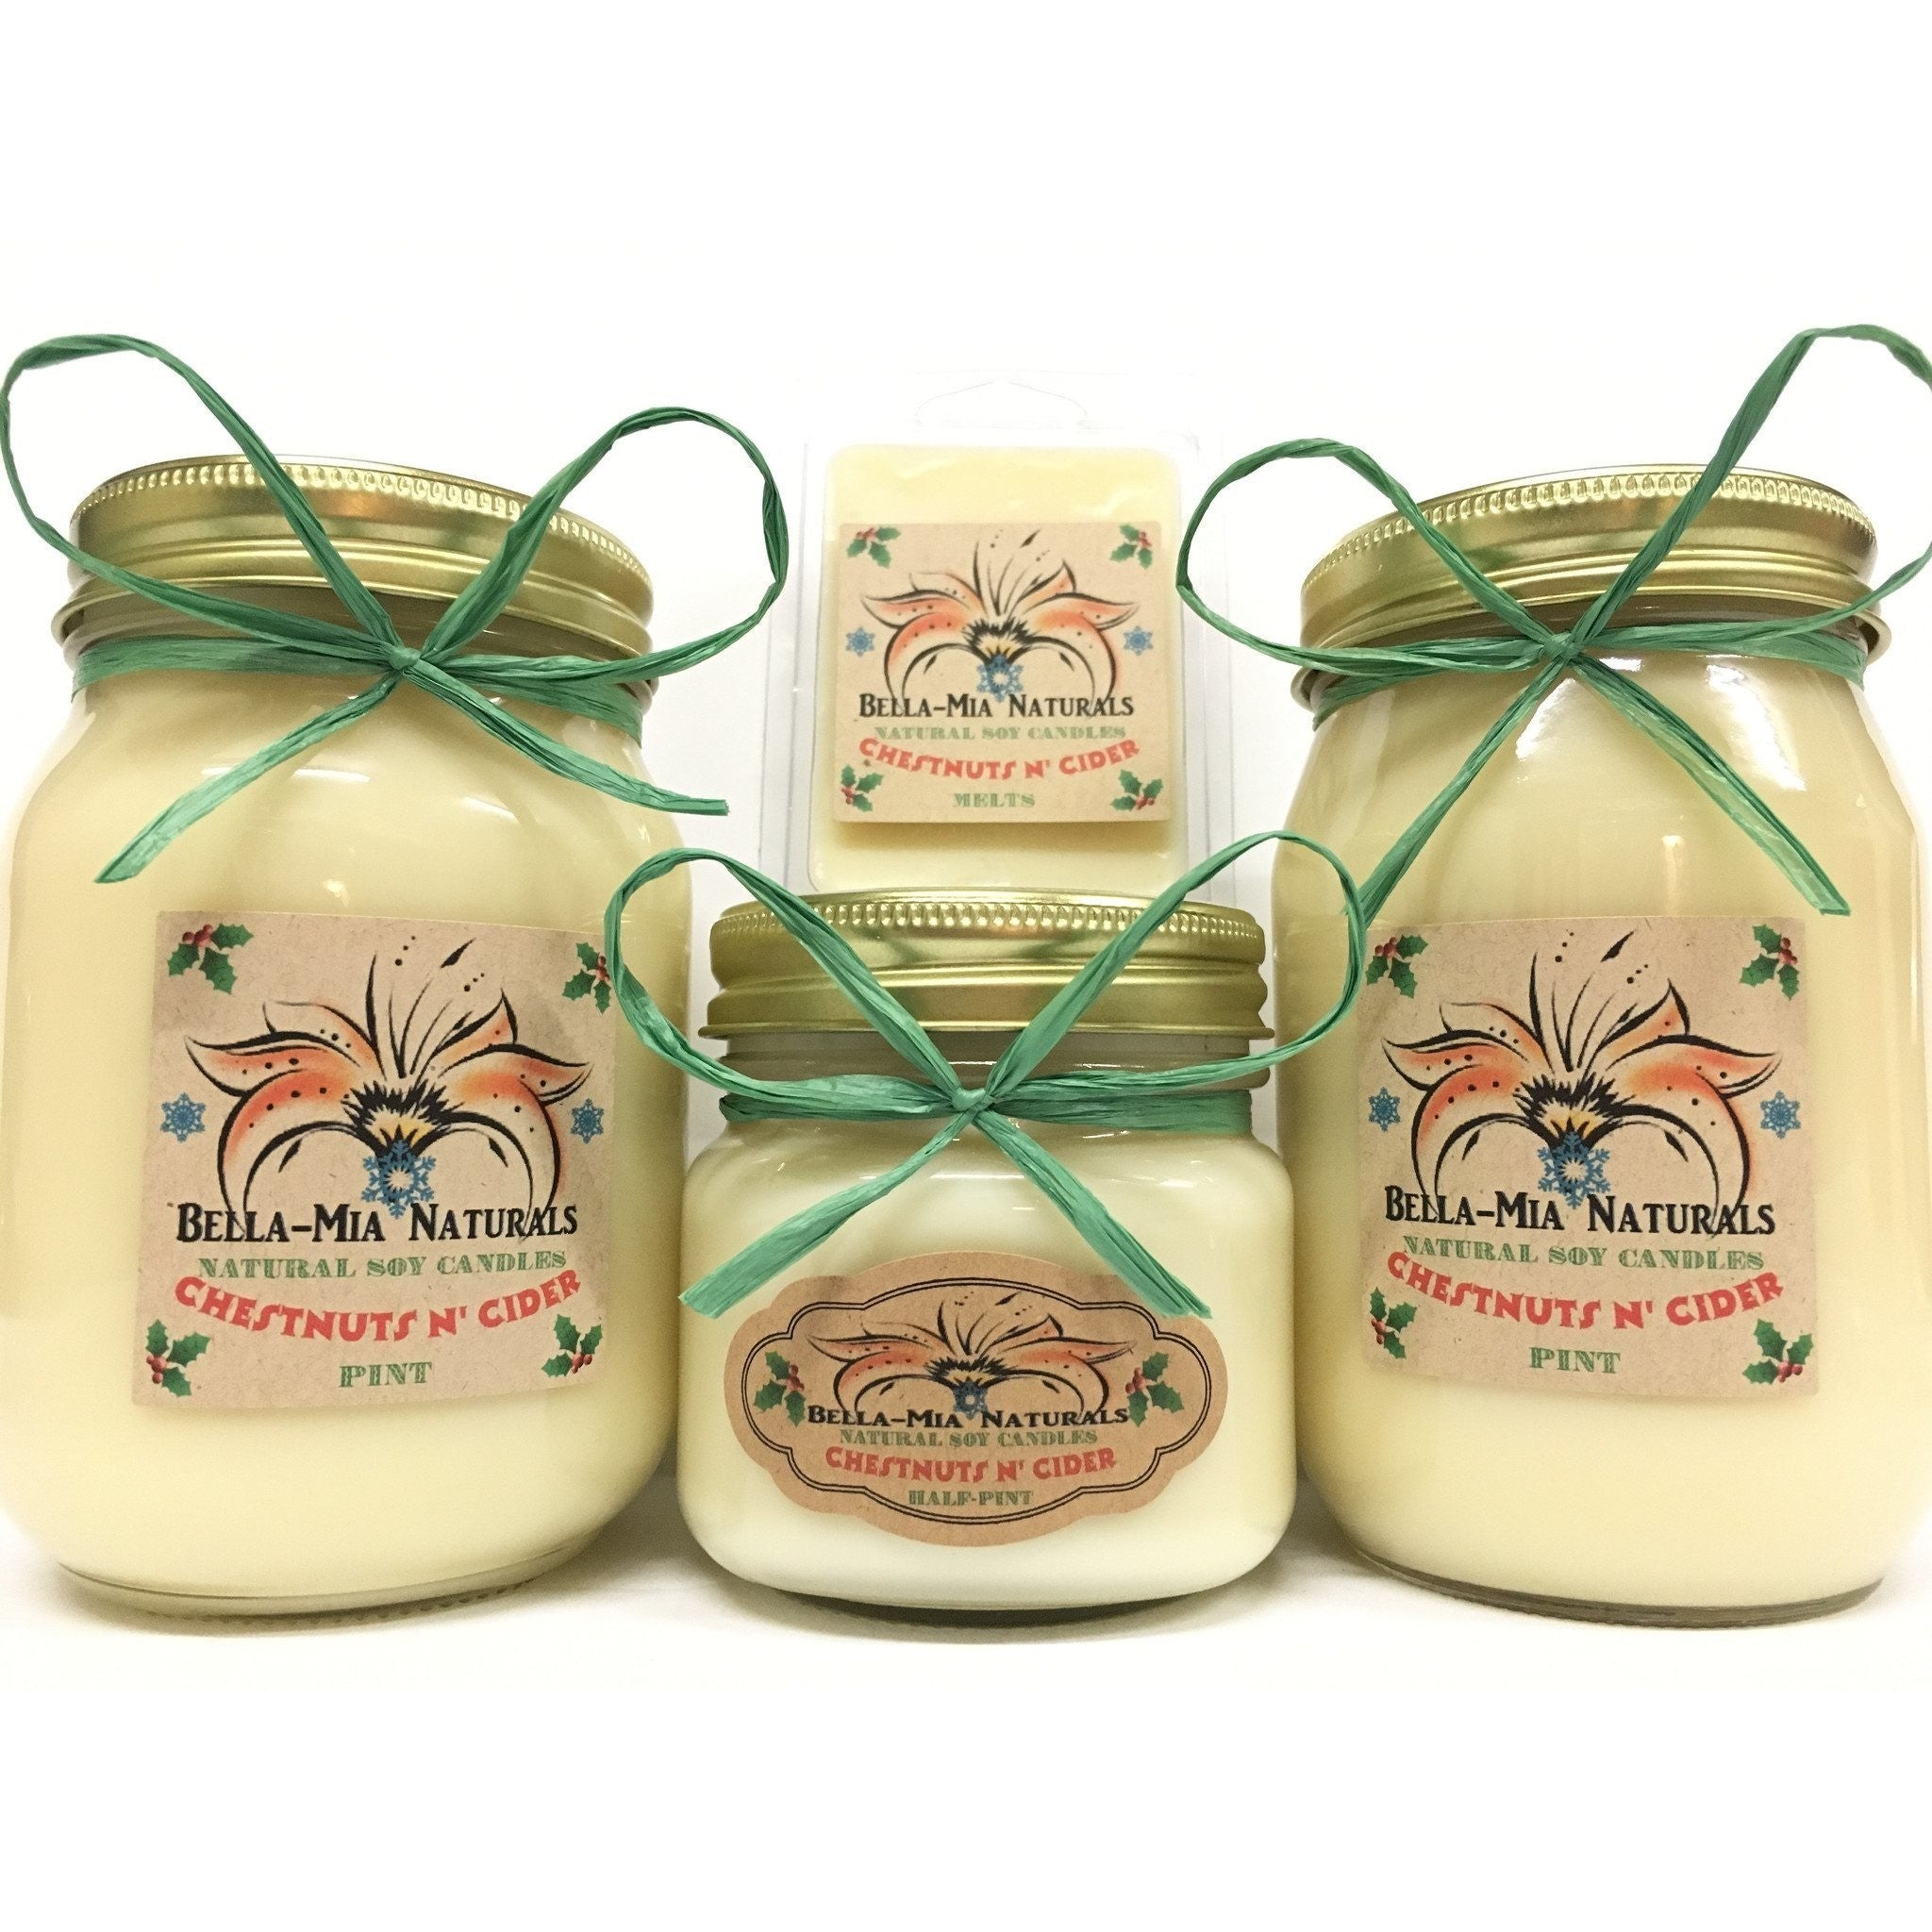 Chestnuts N' Cider Natural Hand Poured Soy Candles -  - Bella-Mia Naturals All Natural Soy Candles & Lip Balms - 4